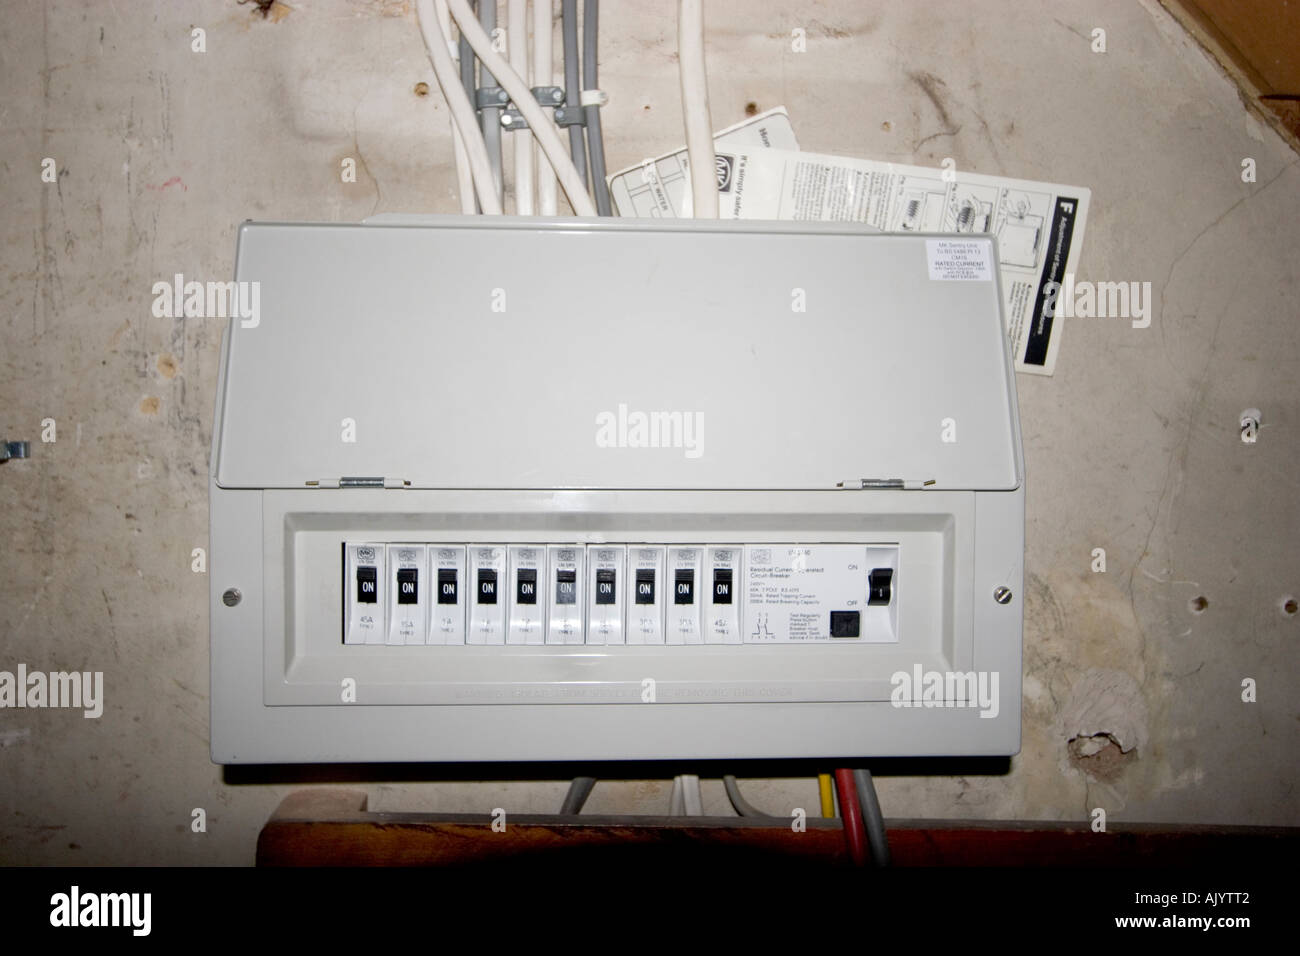 uk electrical fuse box under stairs of house AJYTT2 uk electrical fuse box under stairs of house stock photo, royalty fuse box in house at honlapkeszites.co